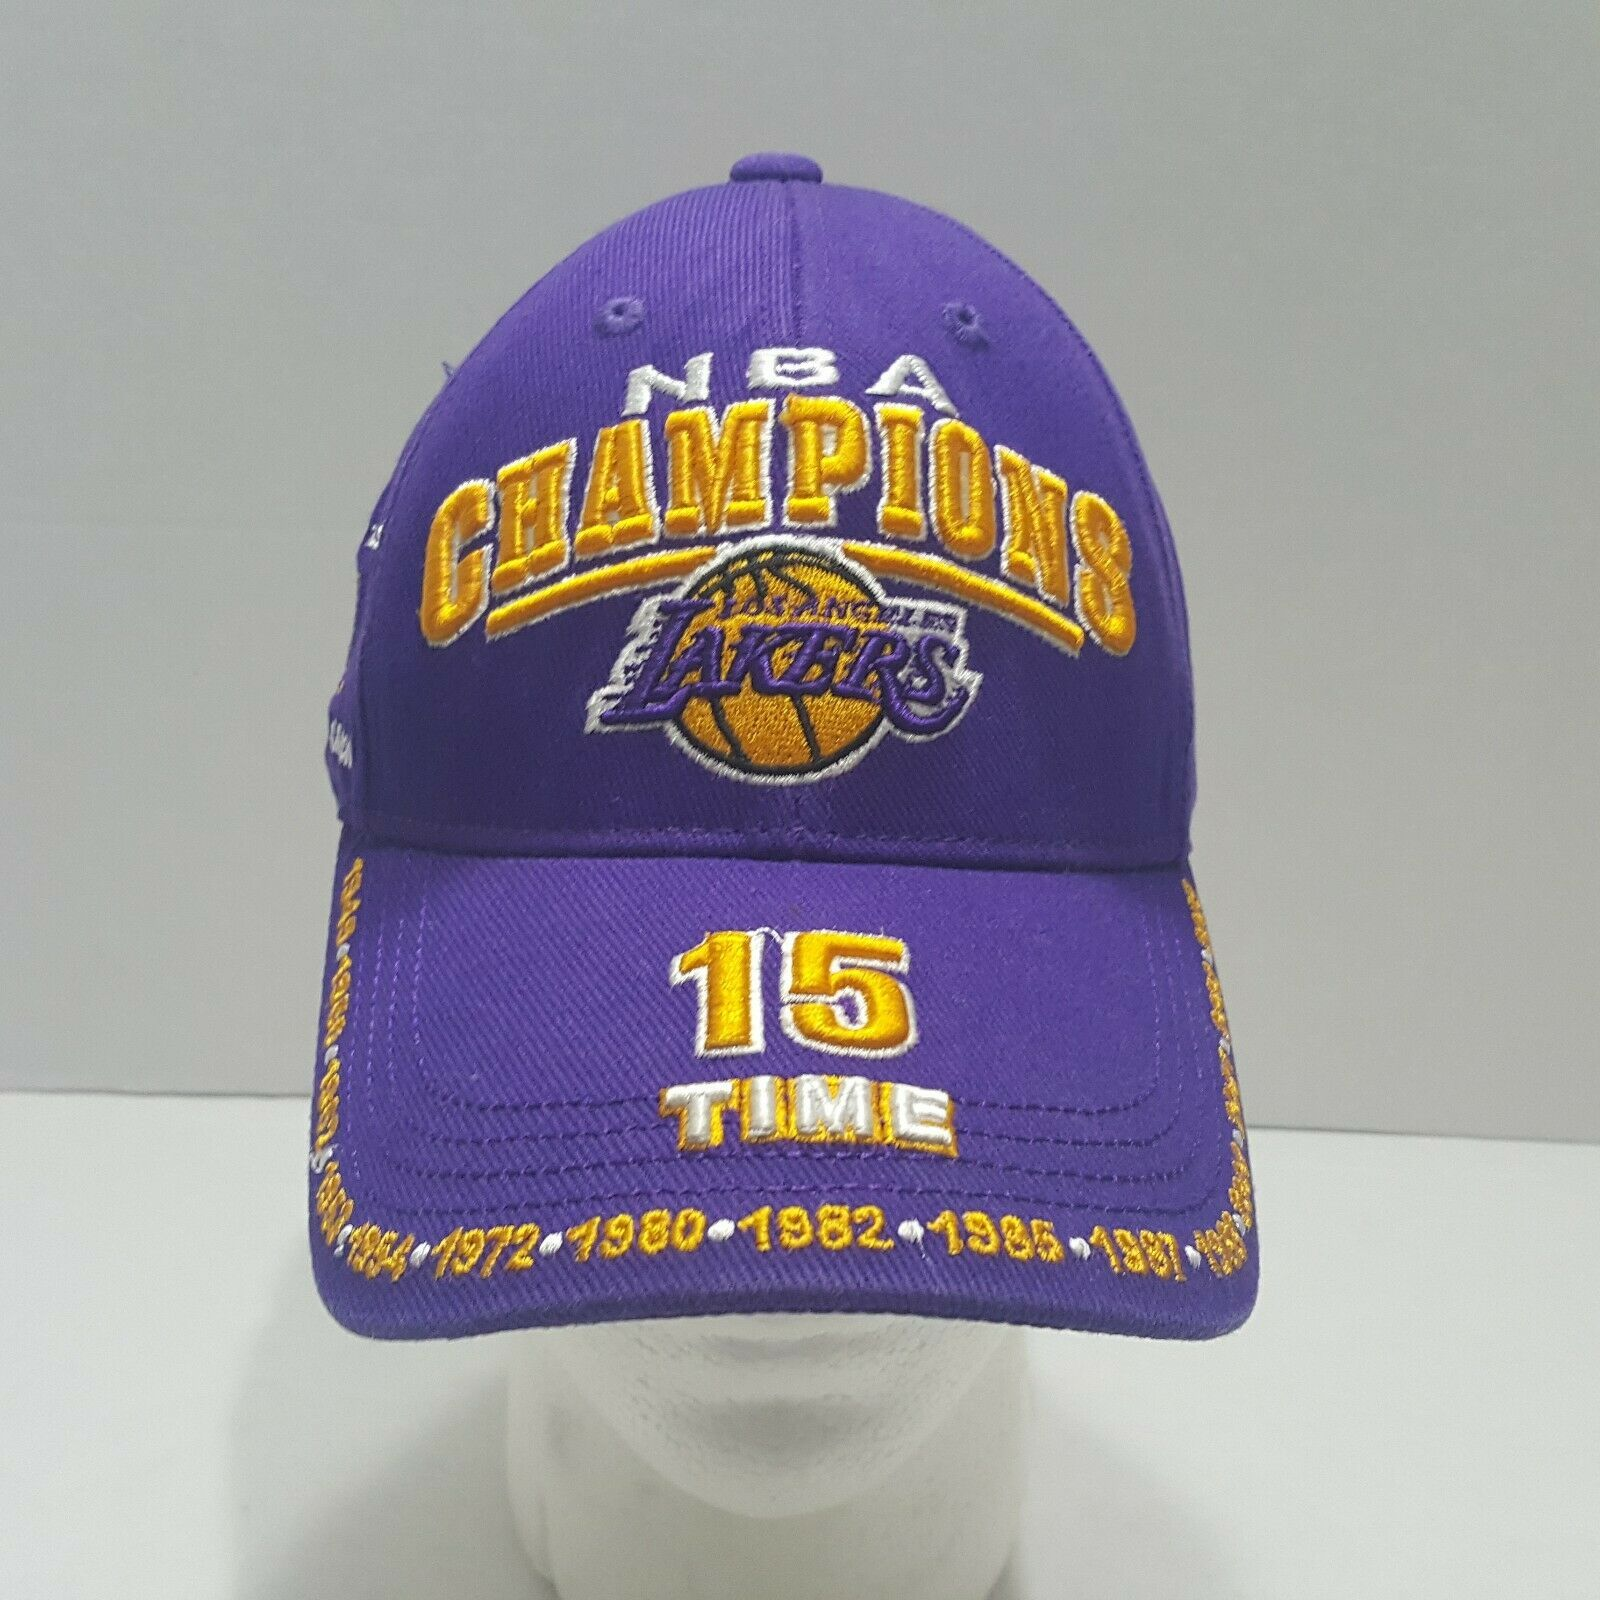 Similar Time 50 Lakers 15 And Items Hat L Adidas A Championship PZukiOwXT